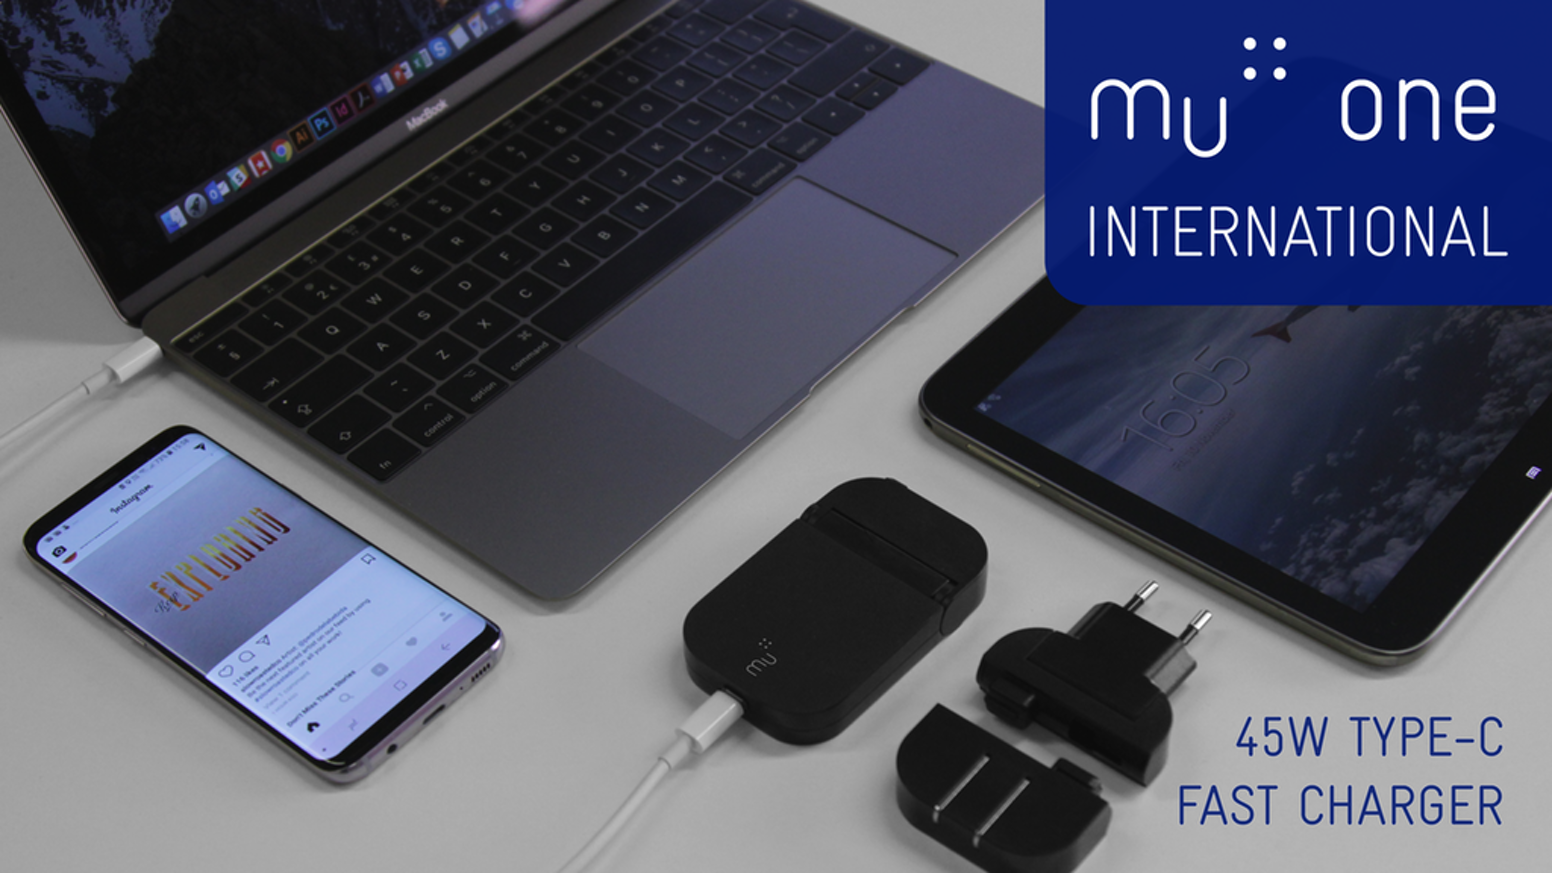 The ultimate charger for anyone on the go. Super slim and with a huge 45W of power, the Mu One charges smartphones, tablets & notebooks.